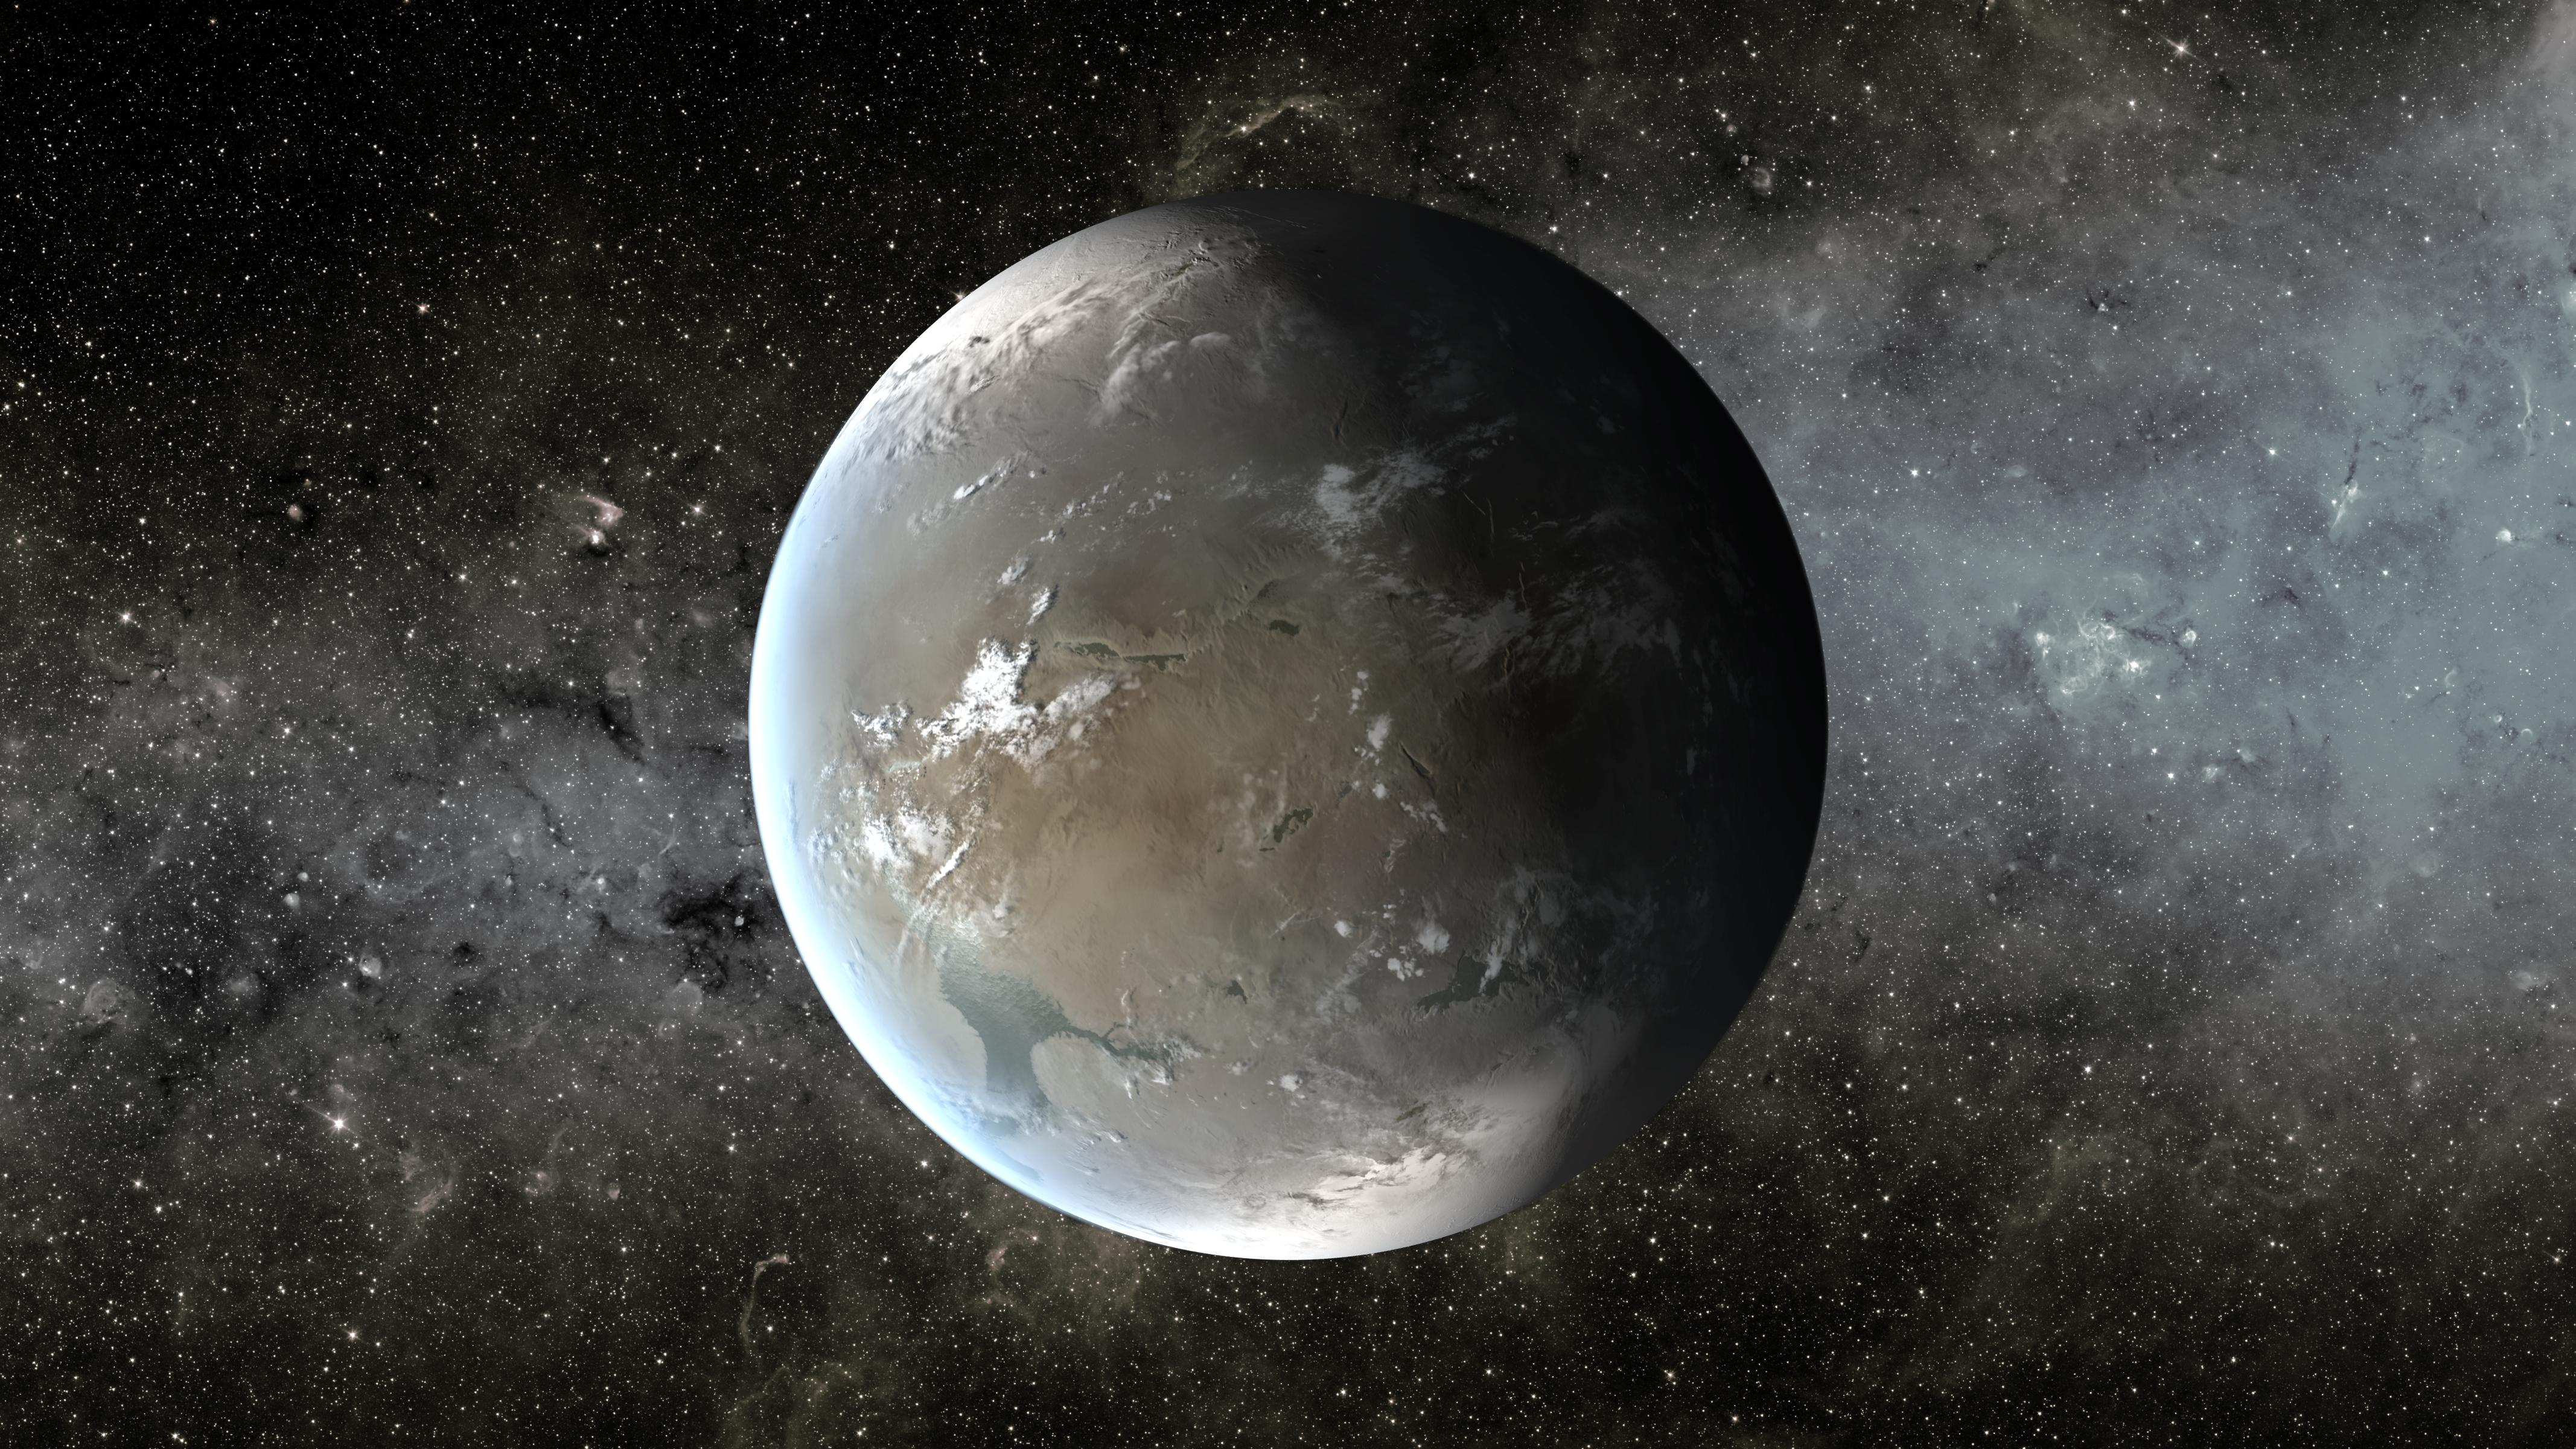 Kepler-62f, a Small Habitable Zone World (Artist Concept) – Exoplanet Exploration: Planets Beyond our Solar System